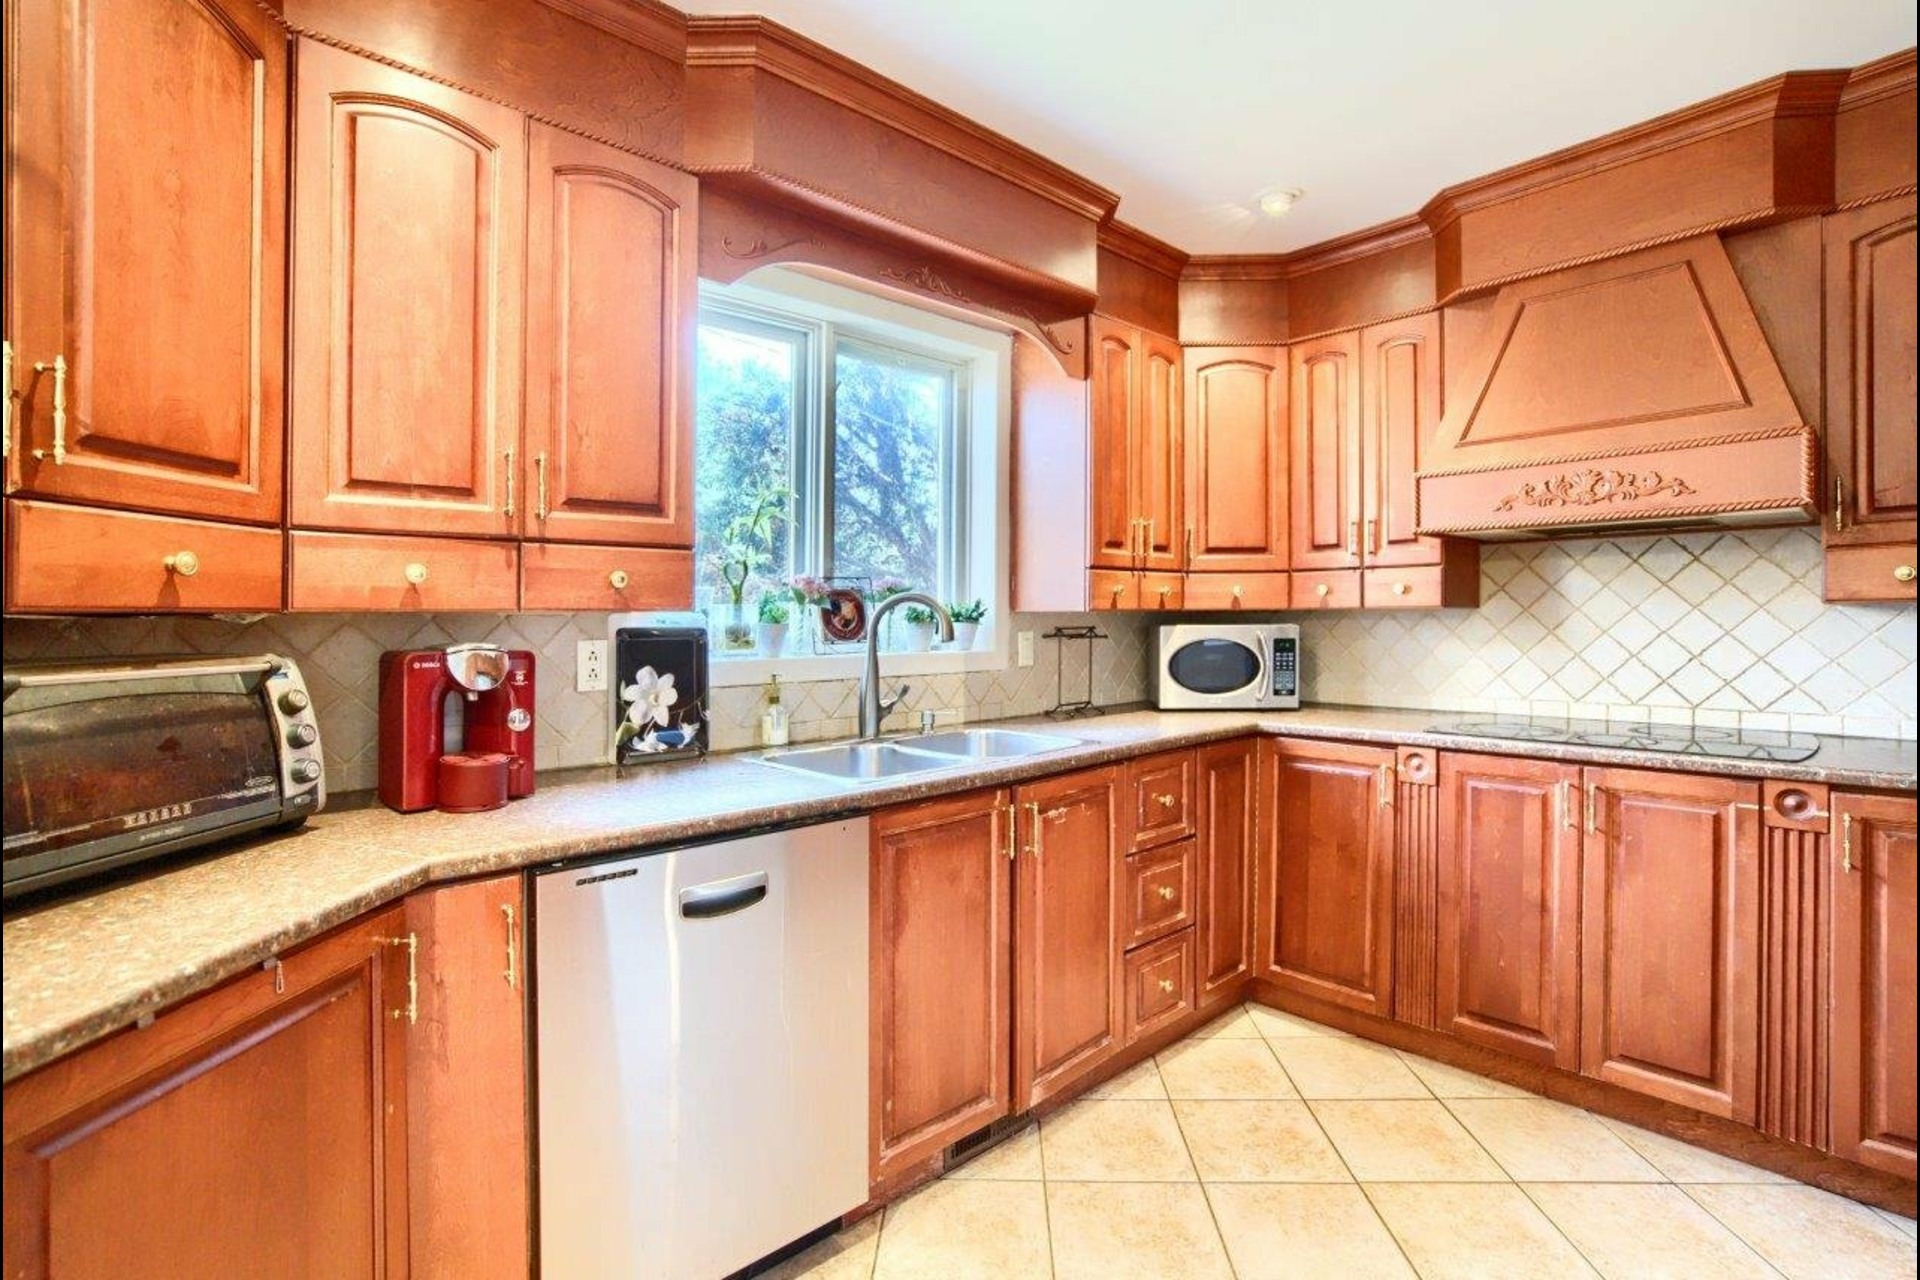 image 7 - House For sale Brossard - 12 rooms